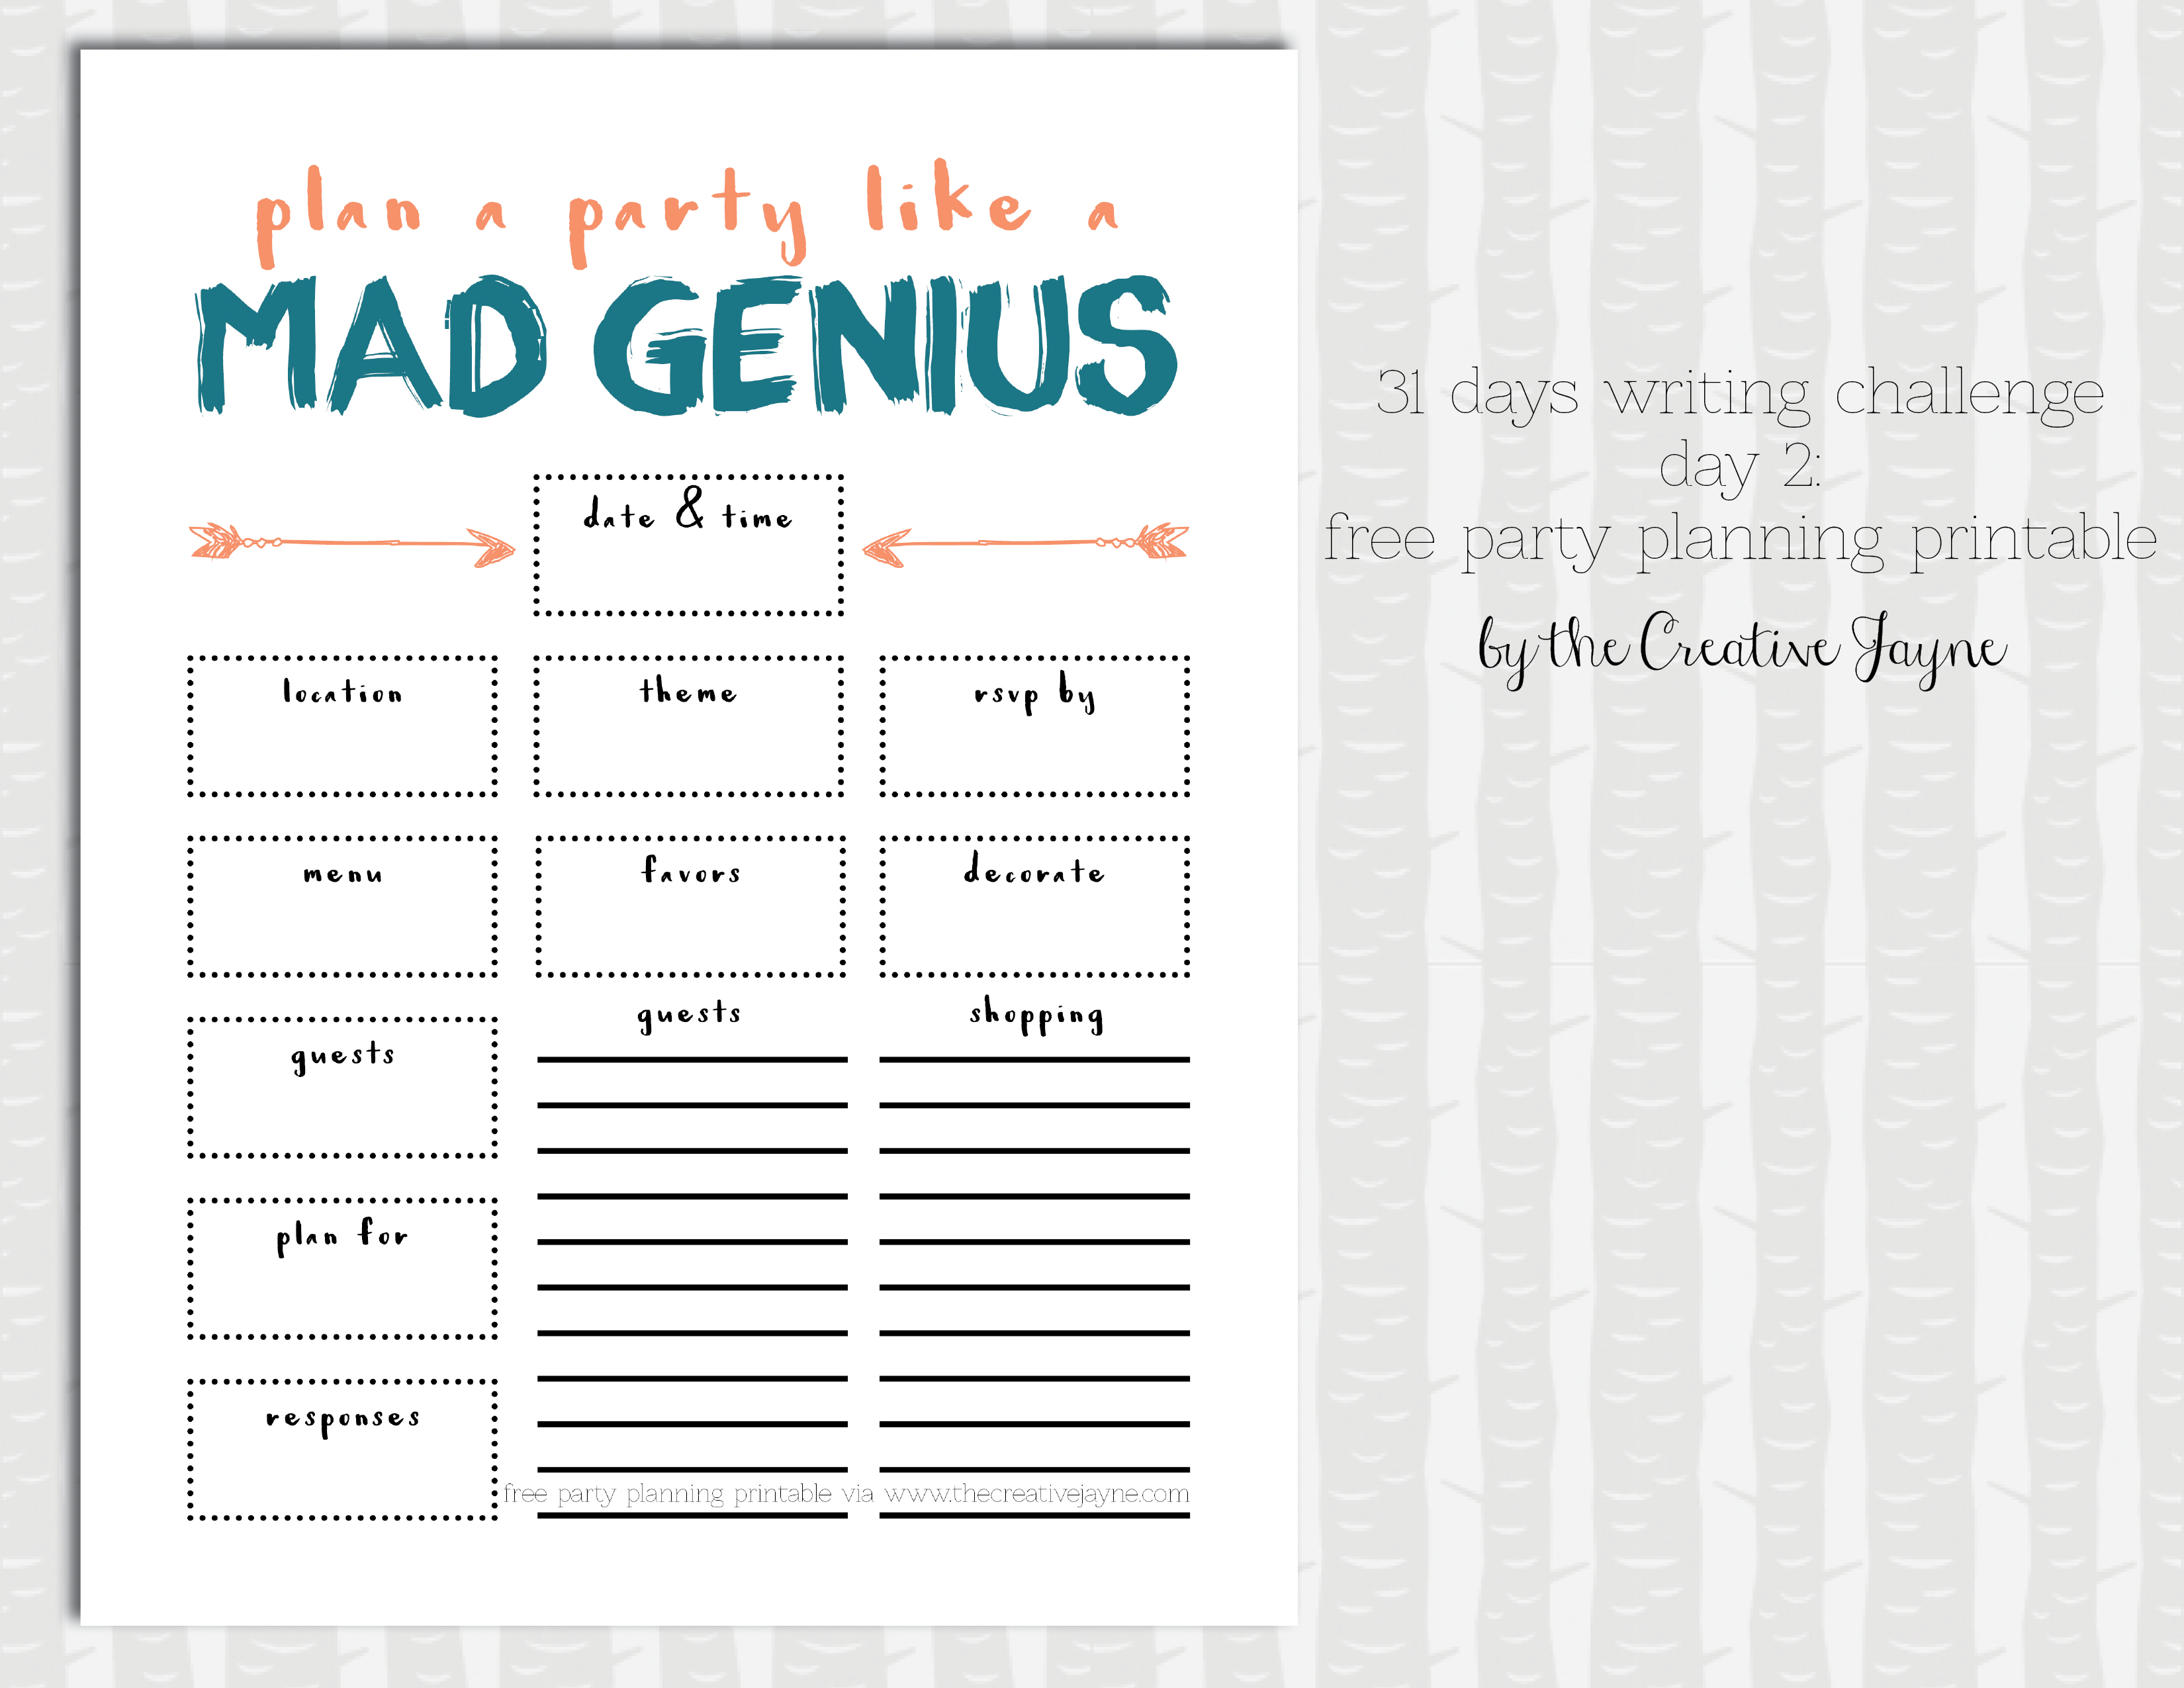 party planning printable by the creative jayne